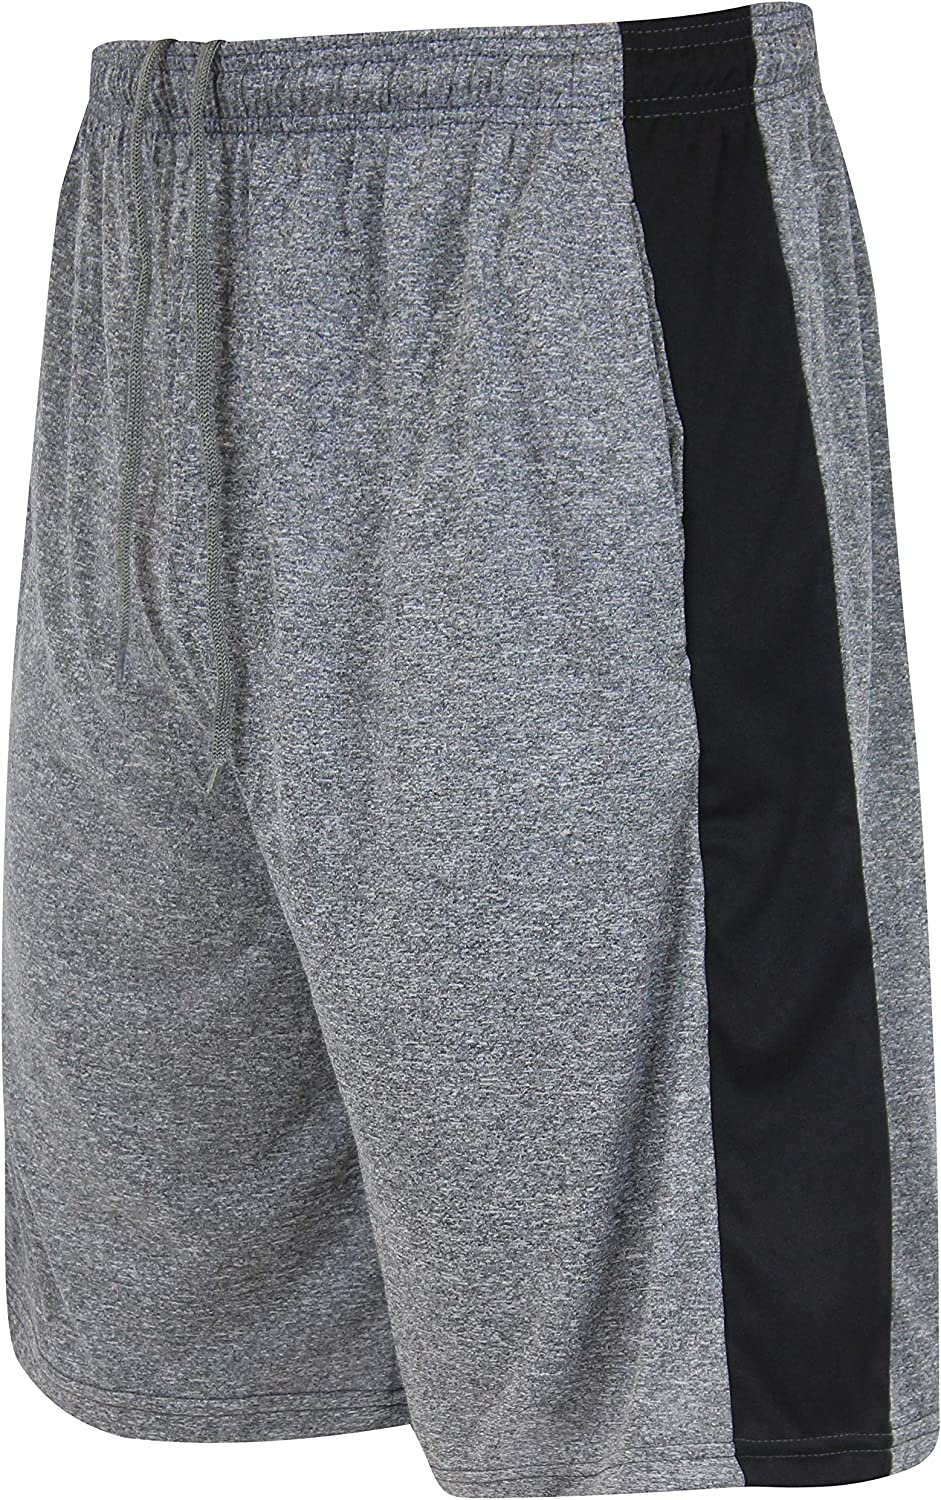 5-Pack Youth Dry-Fit Active Athletic Basketball Gym Shorts with Pockets Boys /& Girls